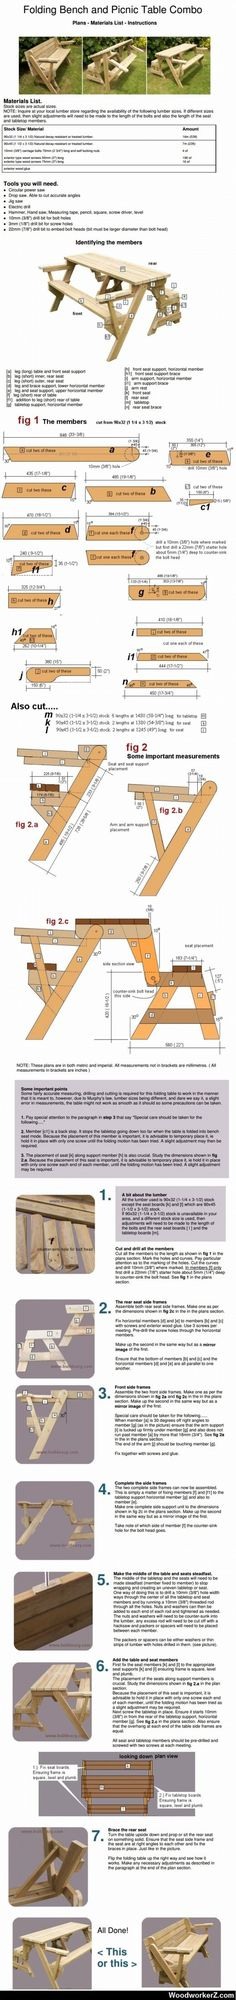 1000 Ideas About Folding Picnic Table Plans On Pinterest Folding Picnic Table Picnic Table